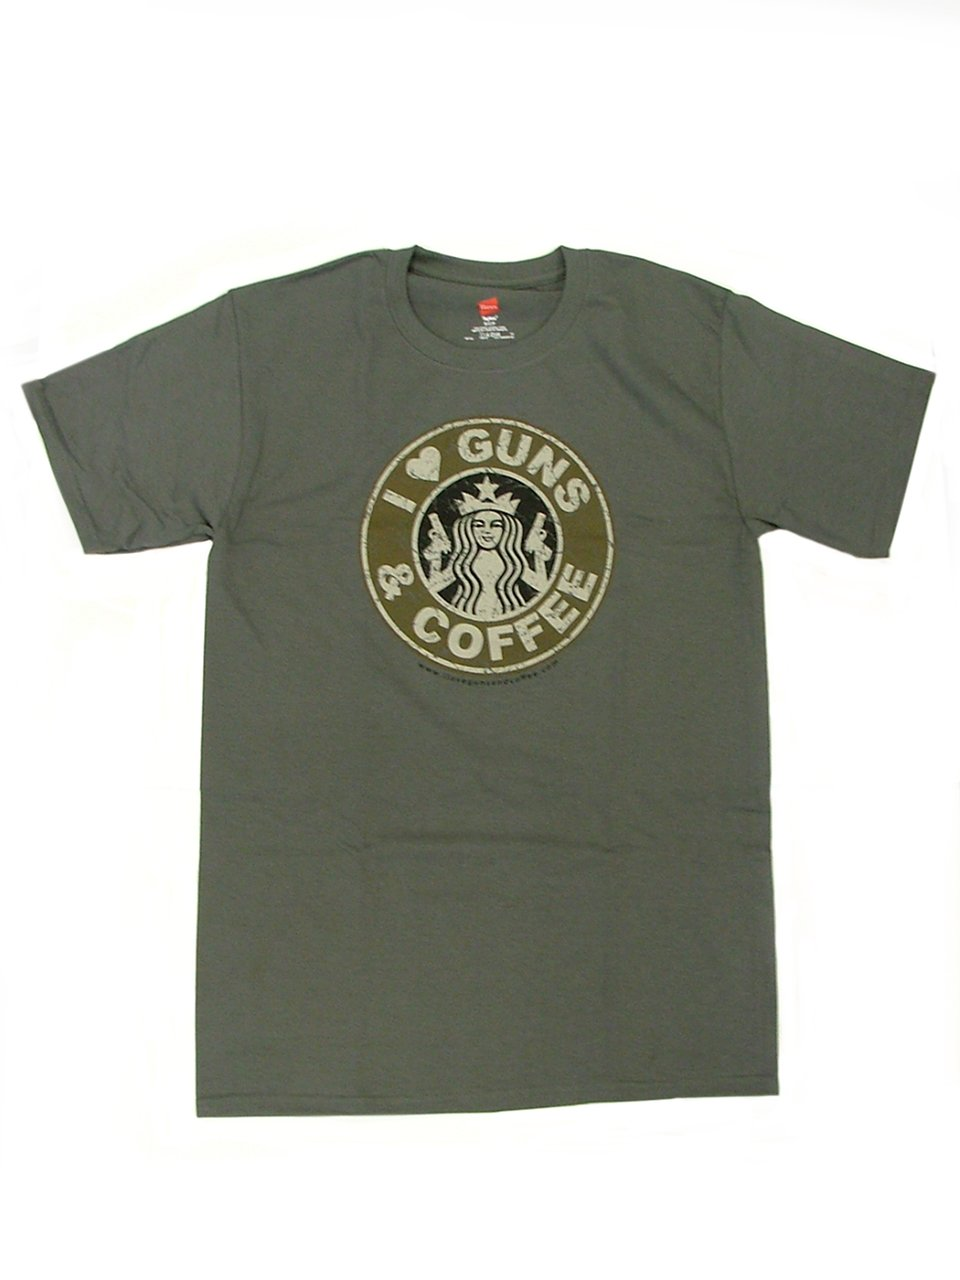 I Love Guns & Coffee T-Shirt with Subdued Logo